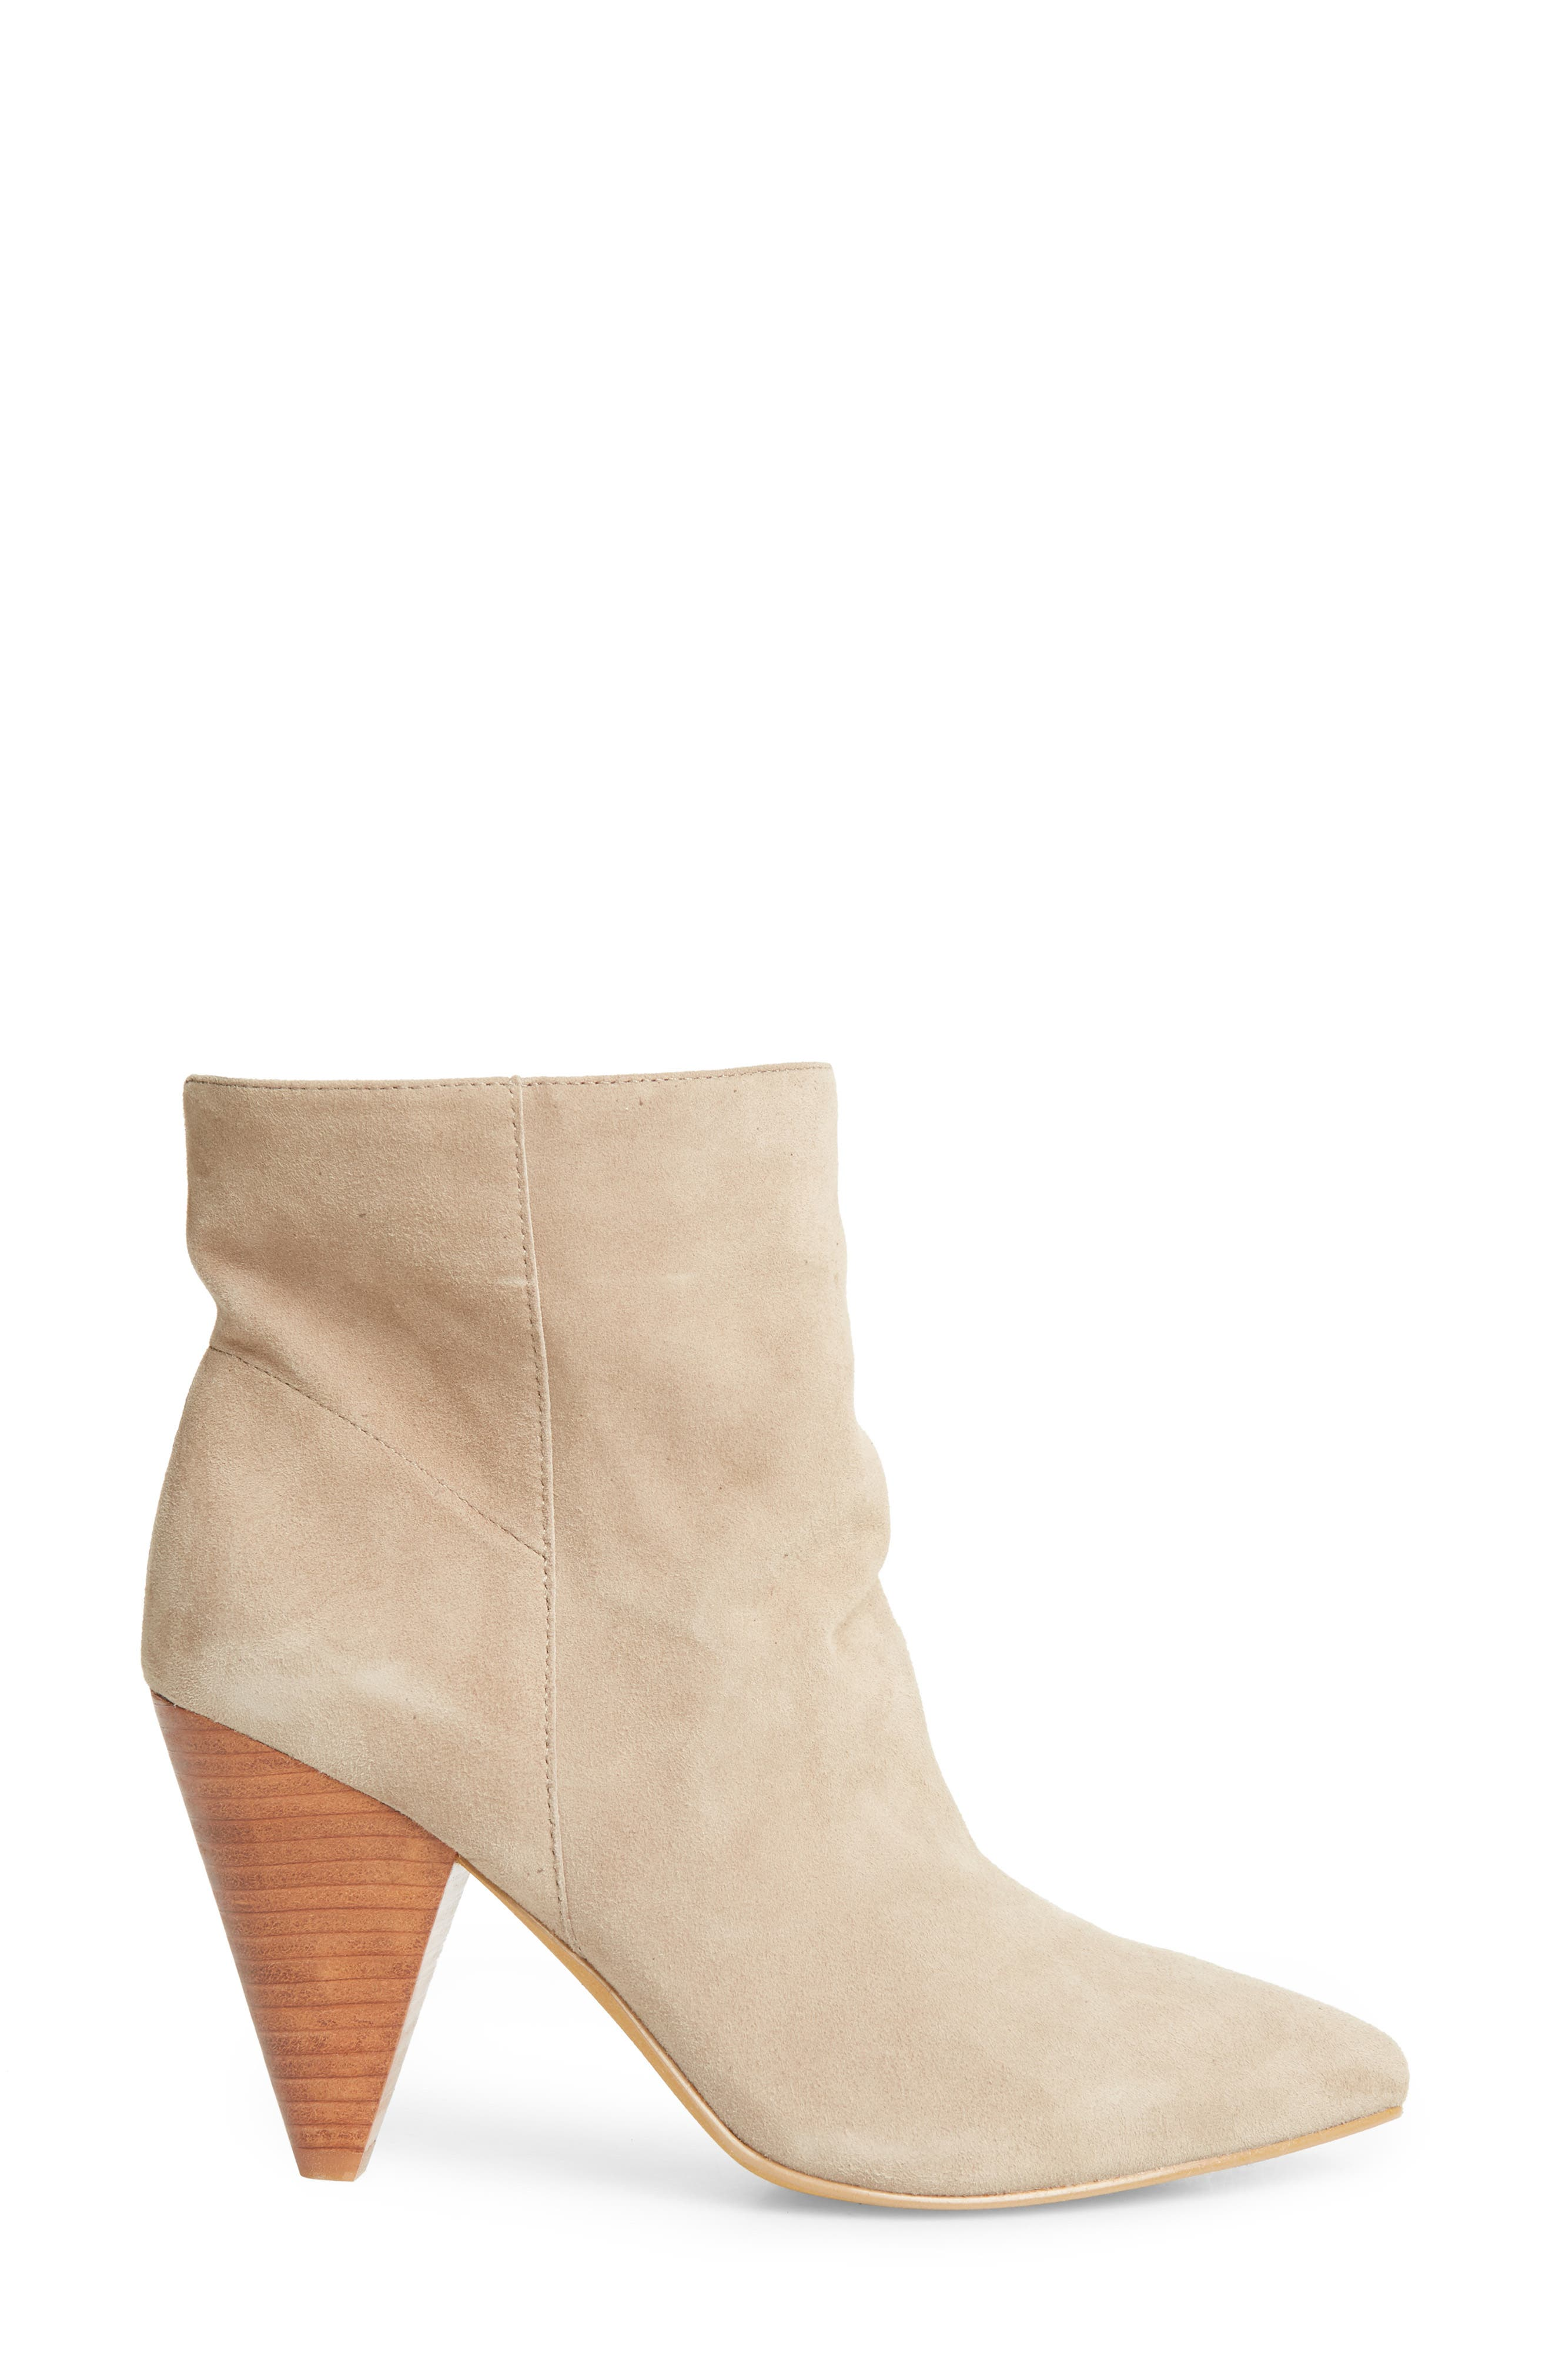 Scope Bootie,                             Alternate thumbnail 3, color,                             TAUPE SUEDE